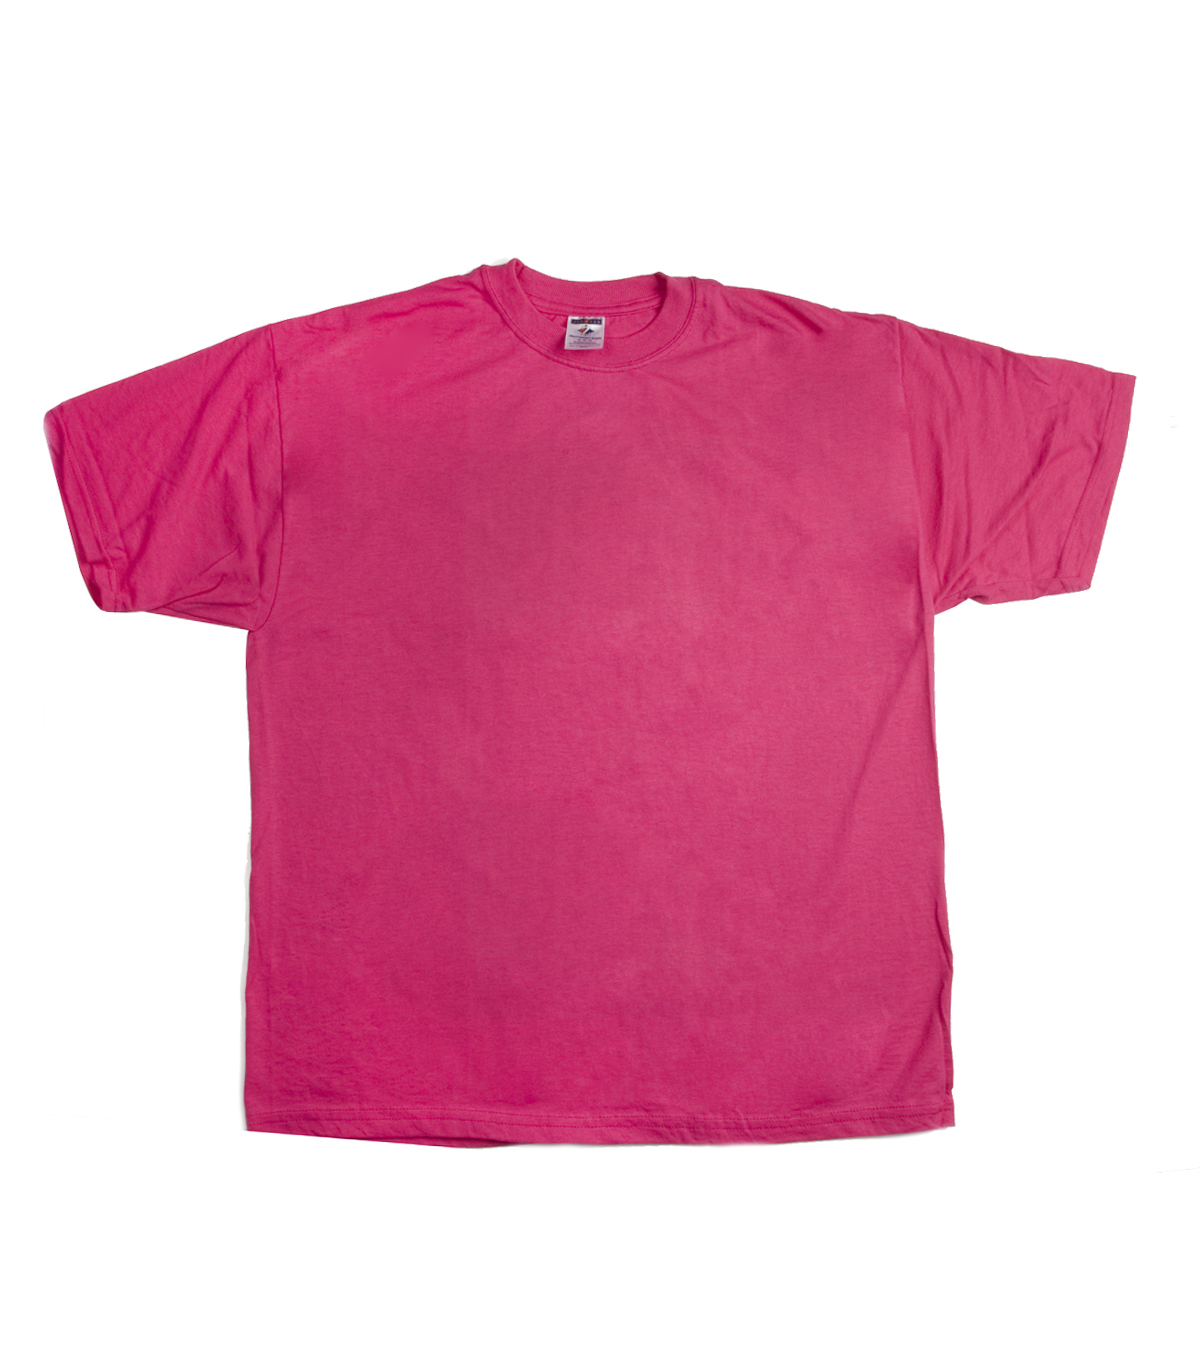 Jerzees Adult T-Shirt Small, Pink